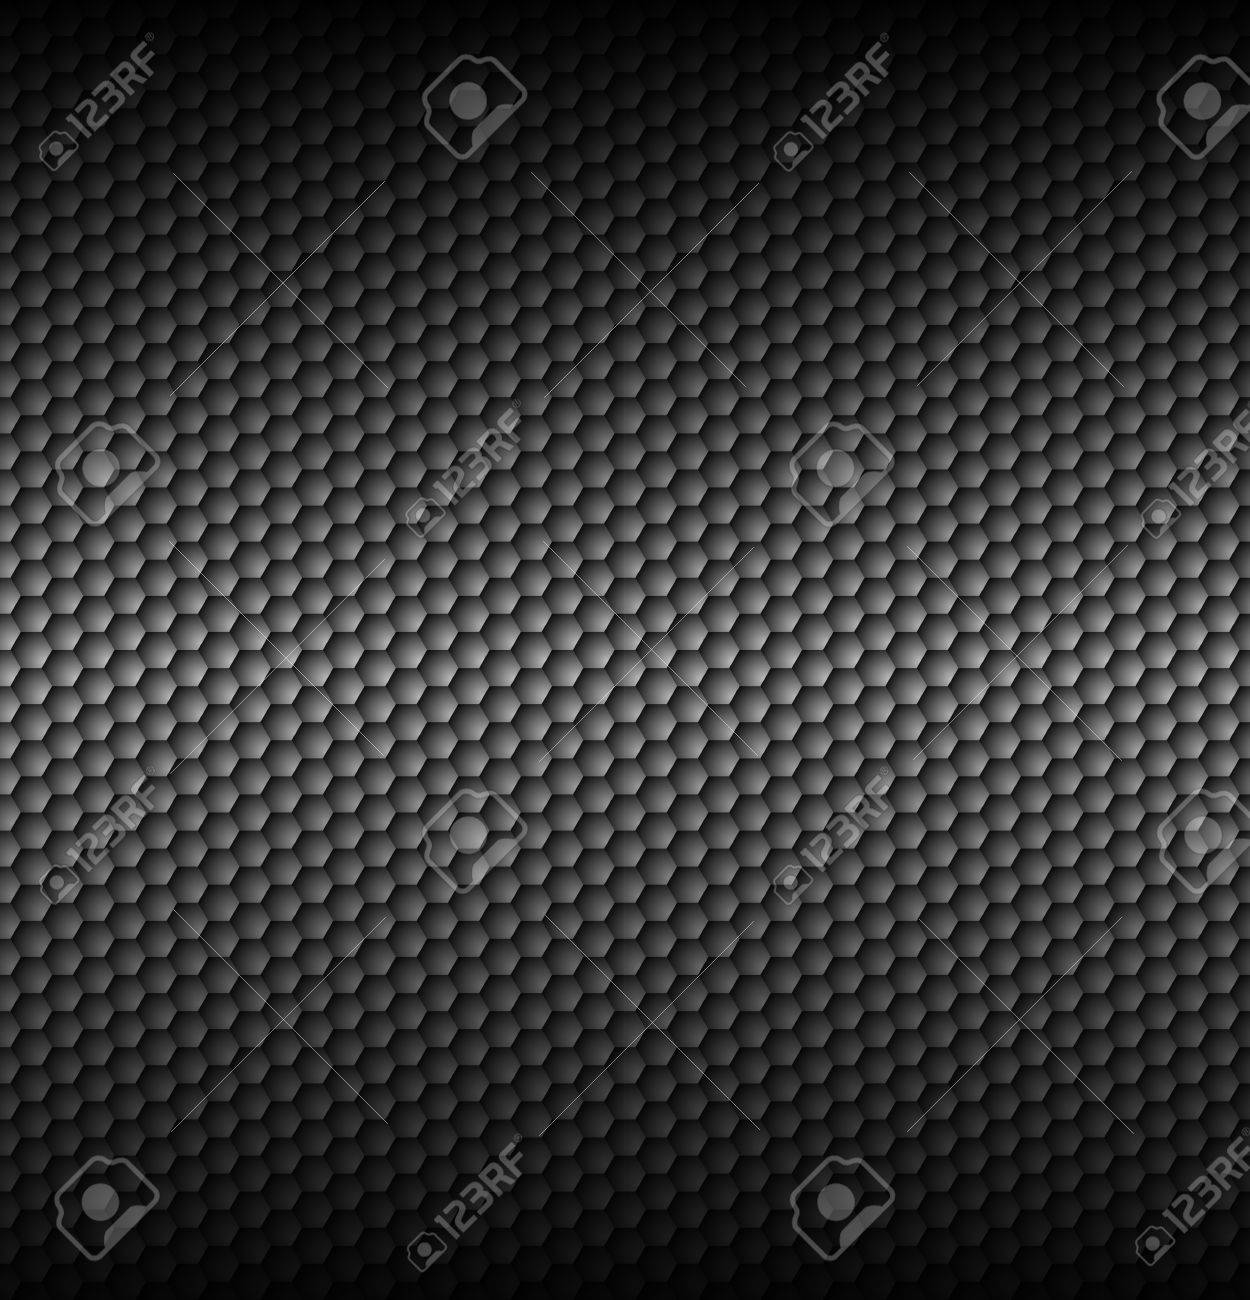 Honeycomb gray textures. Illustration for design Stock Vector - 17616909